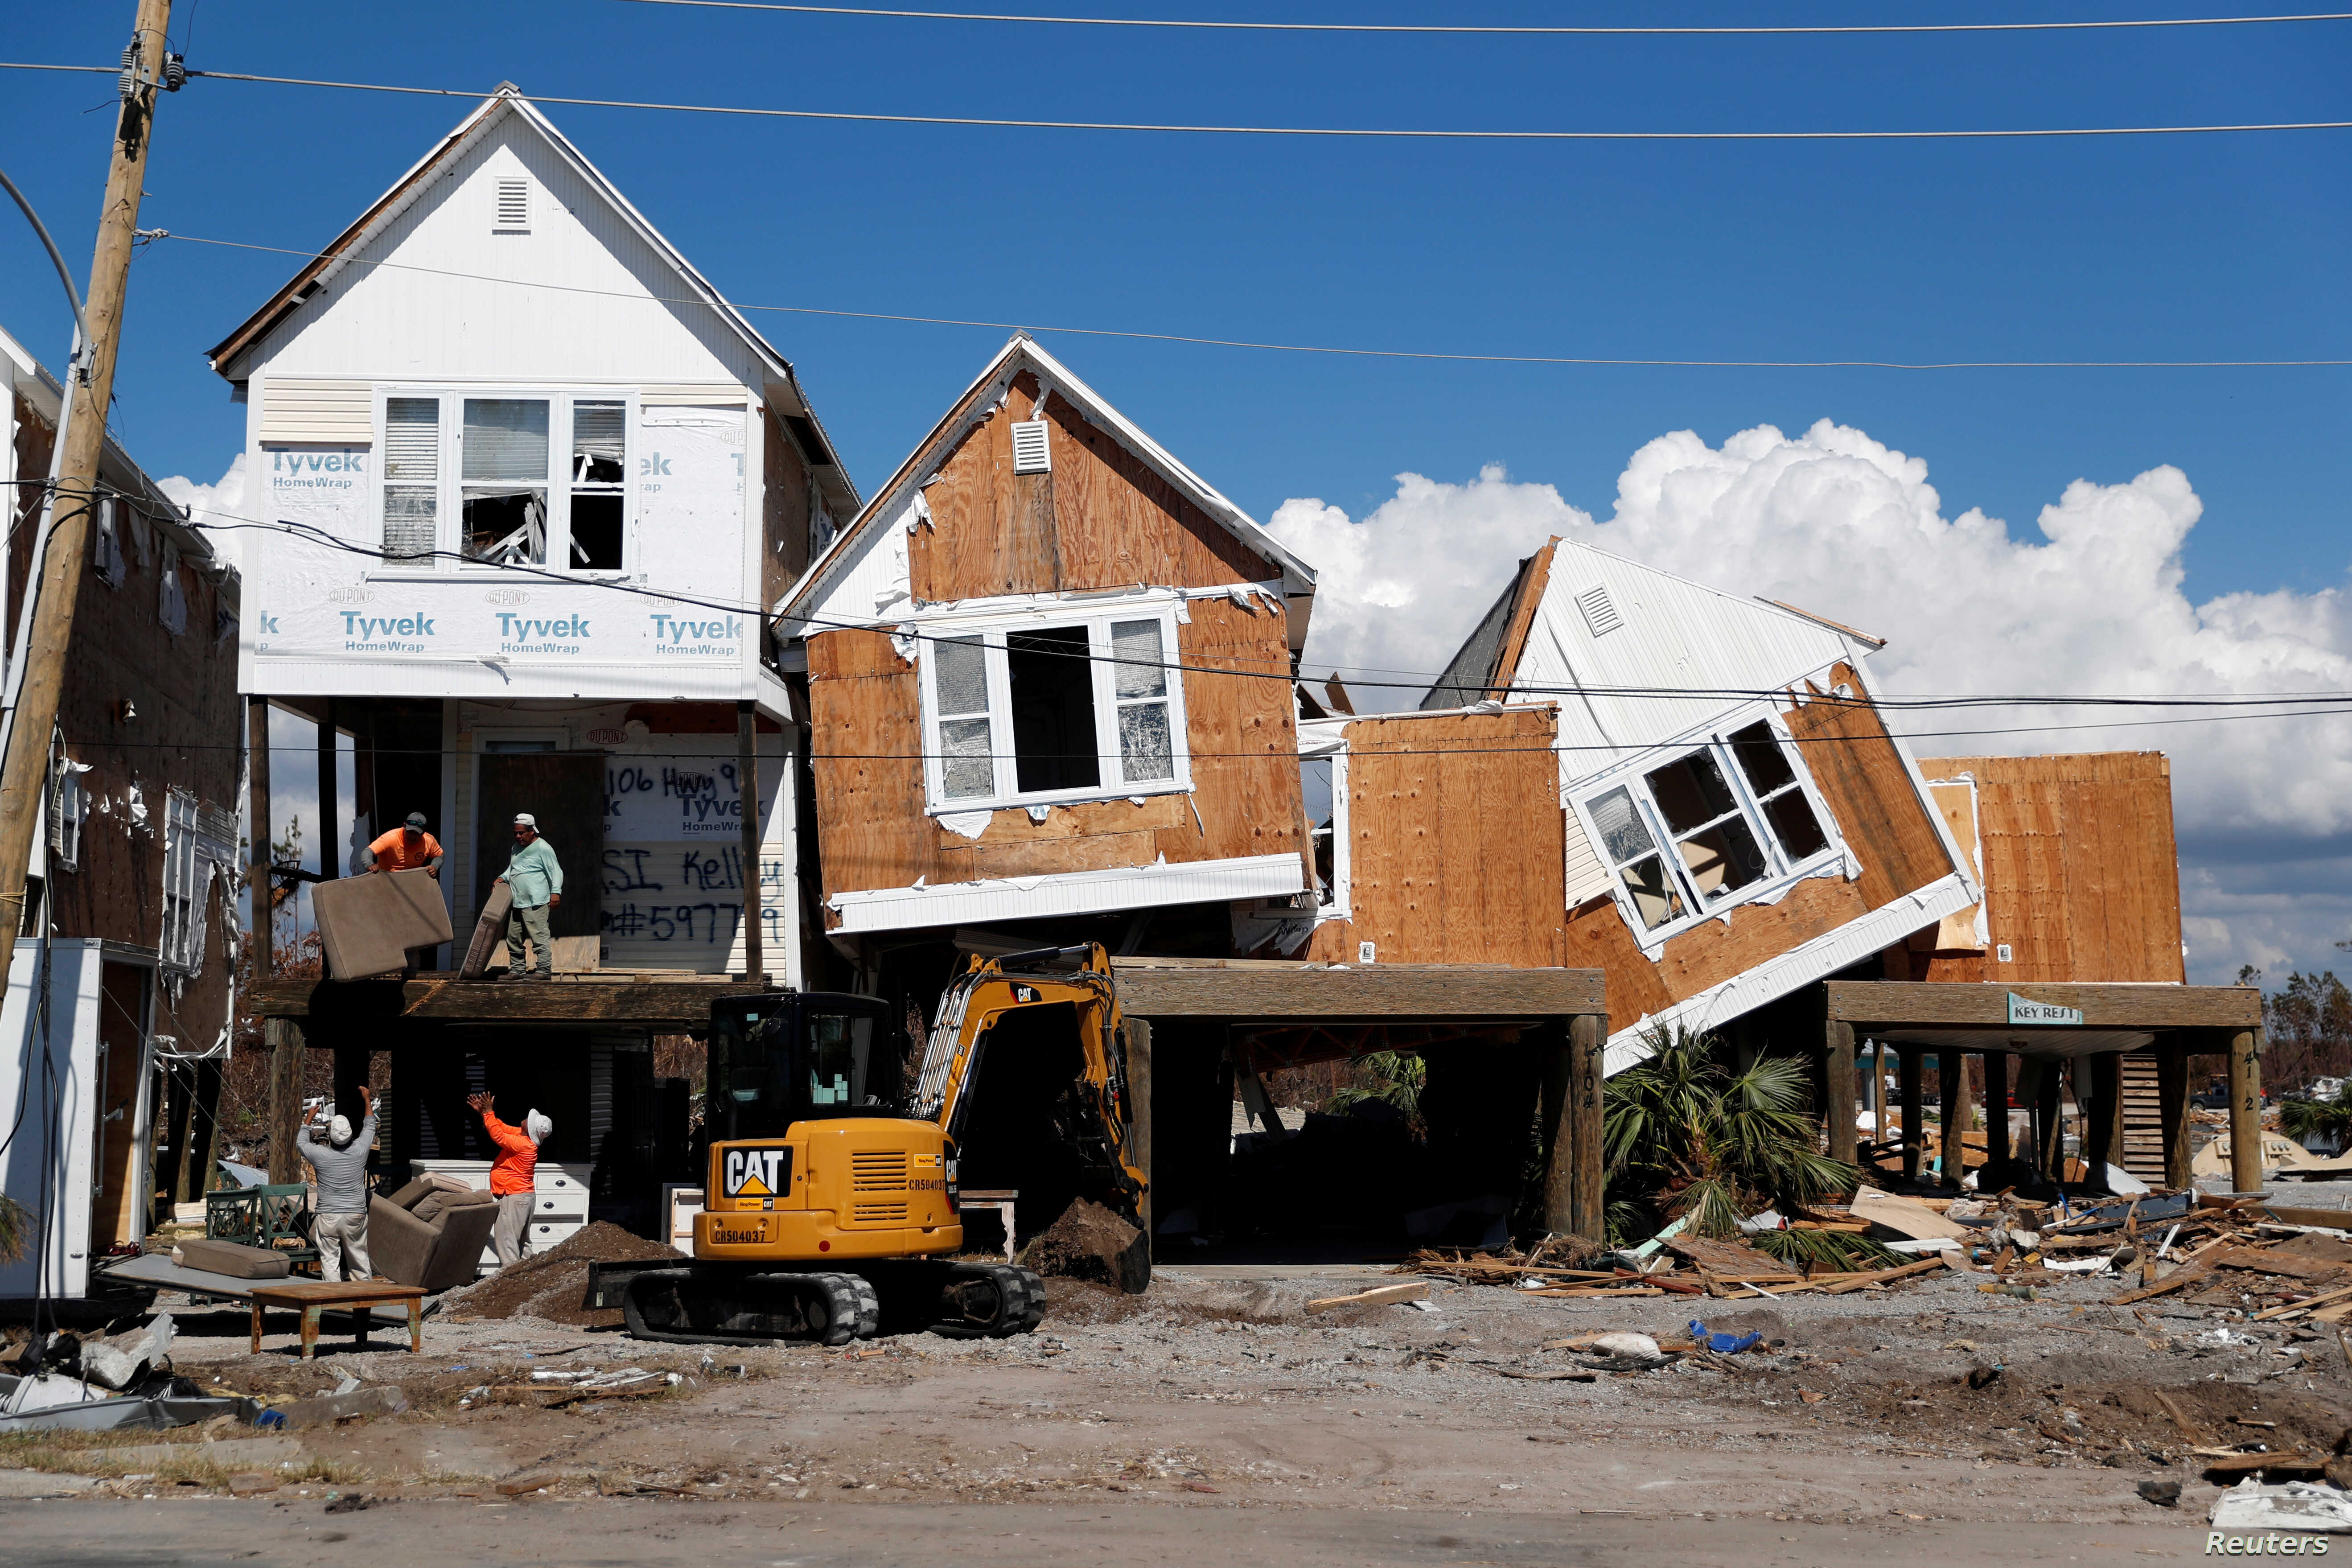 Damage caused by Hurricane Michael is seen in Mexico Beach, Florida, U.S., October 16, 2018.